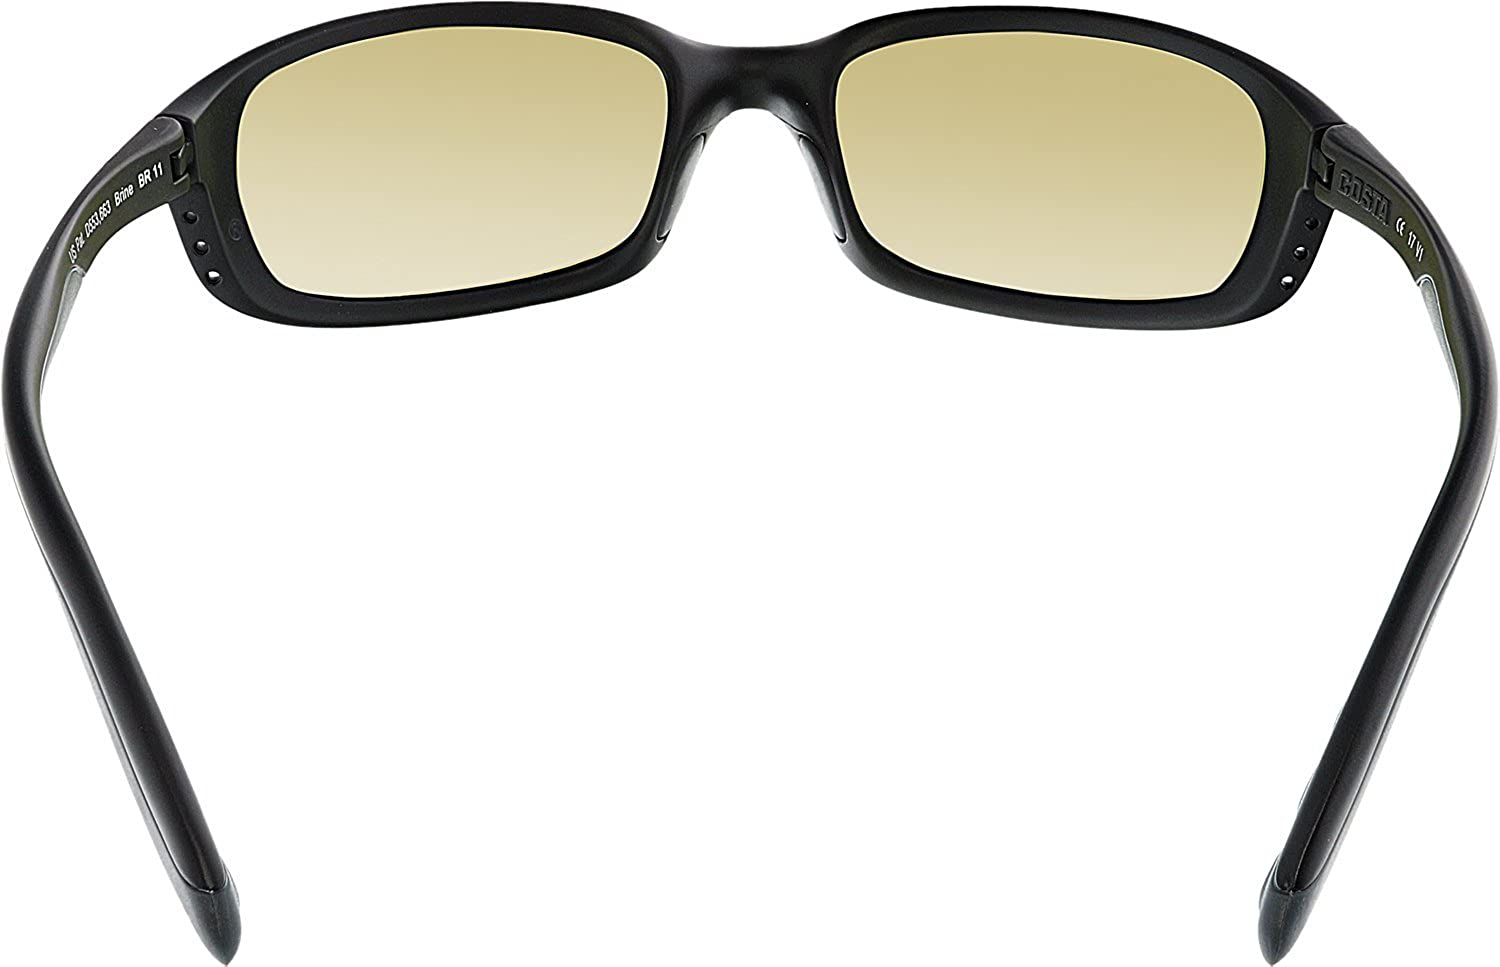 17d320667104 Amazon.com: Costa Del Mar Brine Sunglasses: Clothing